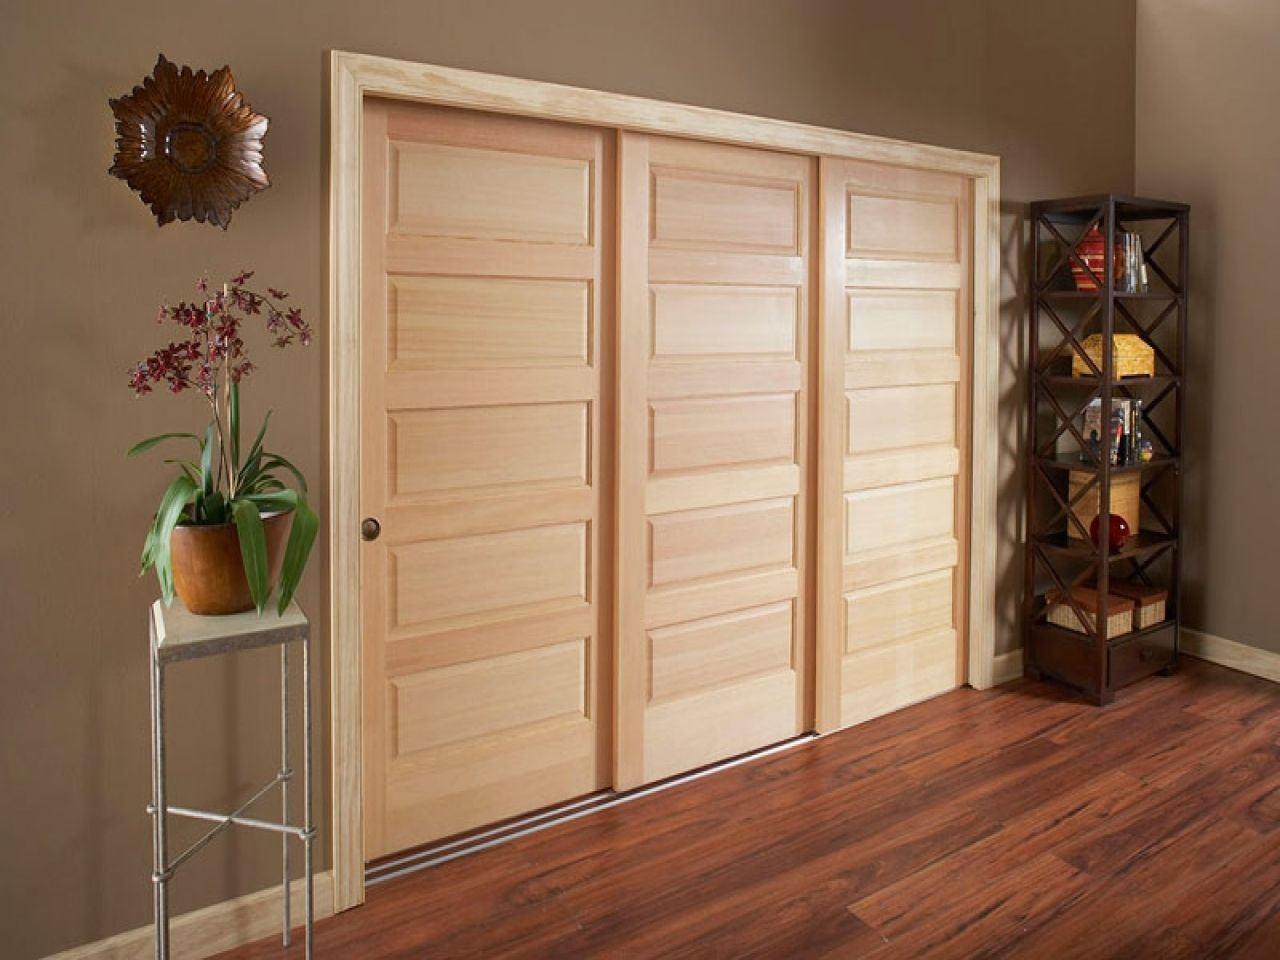 3 Track Door Sliding Closet Doors Httpsourceabl Pinterest